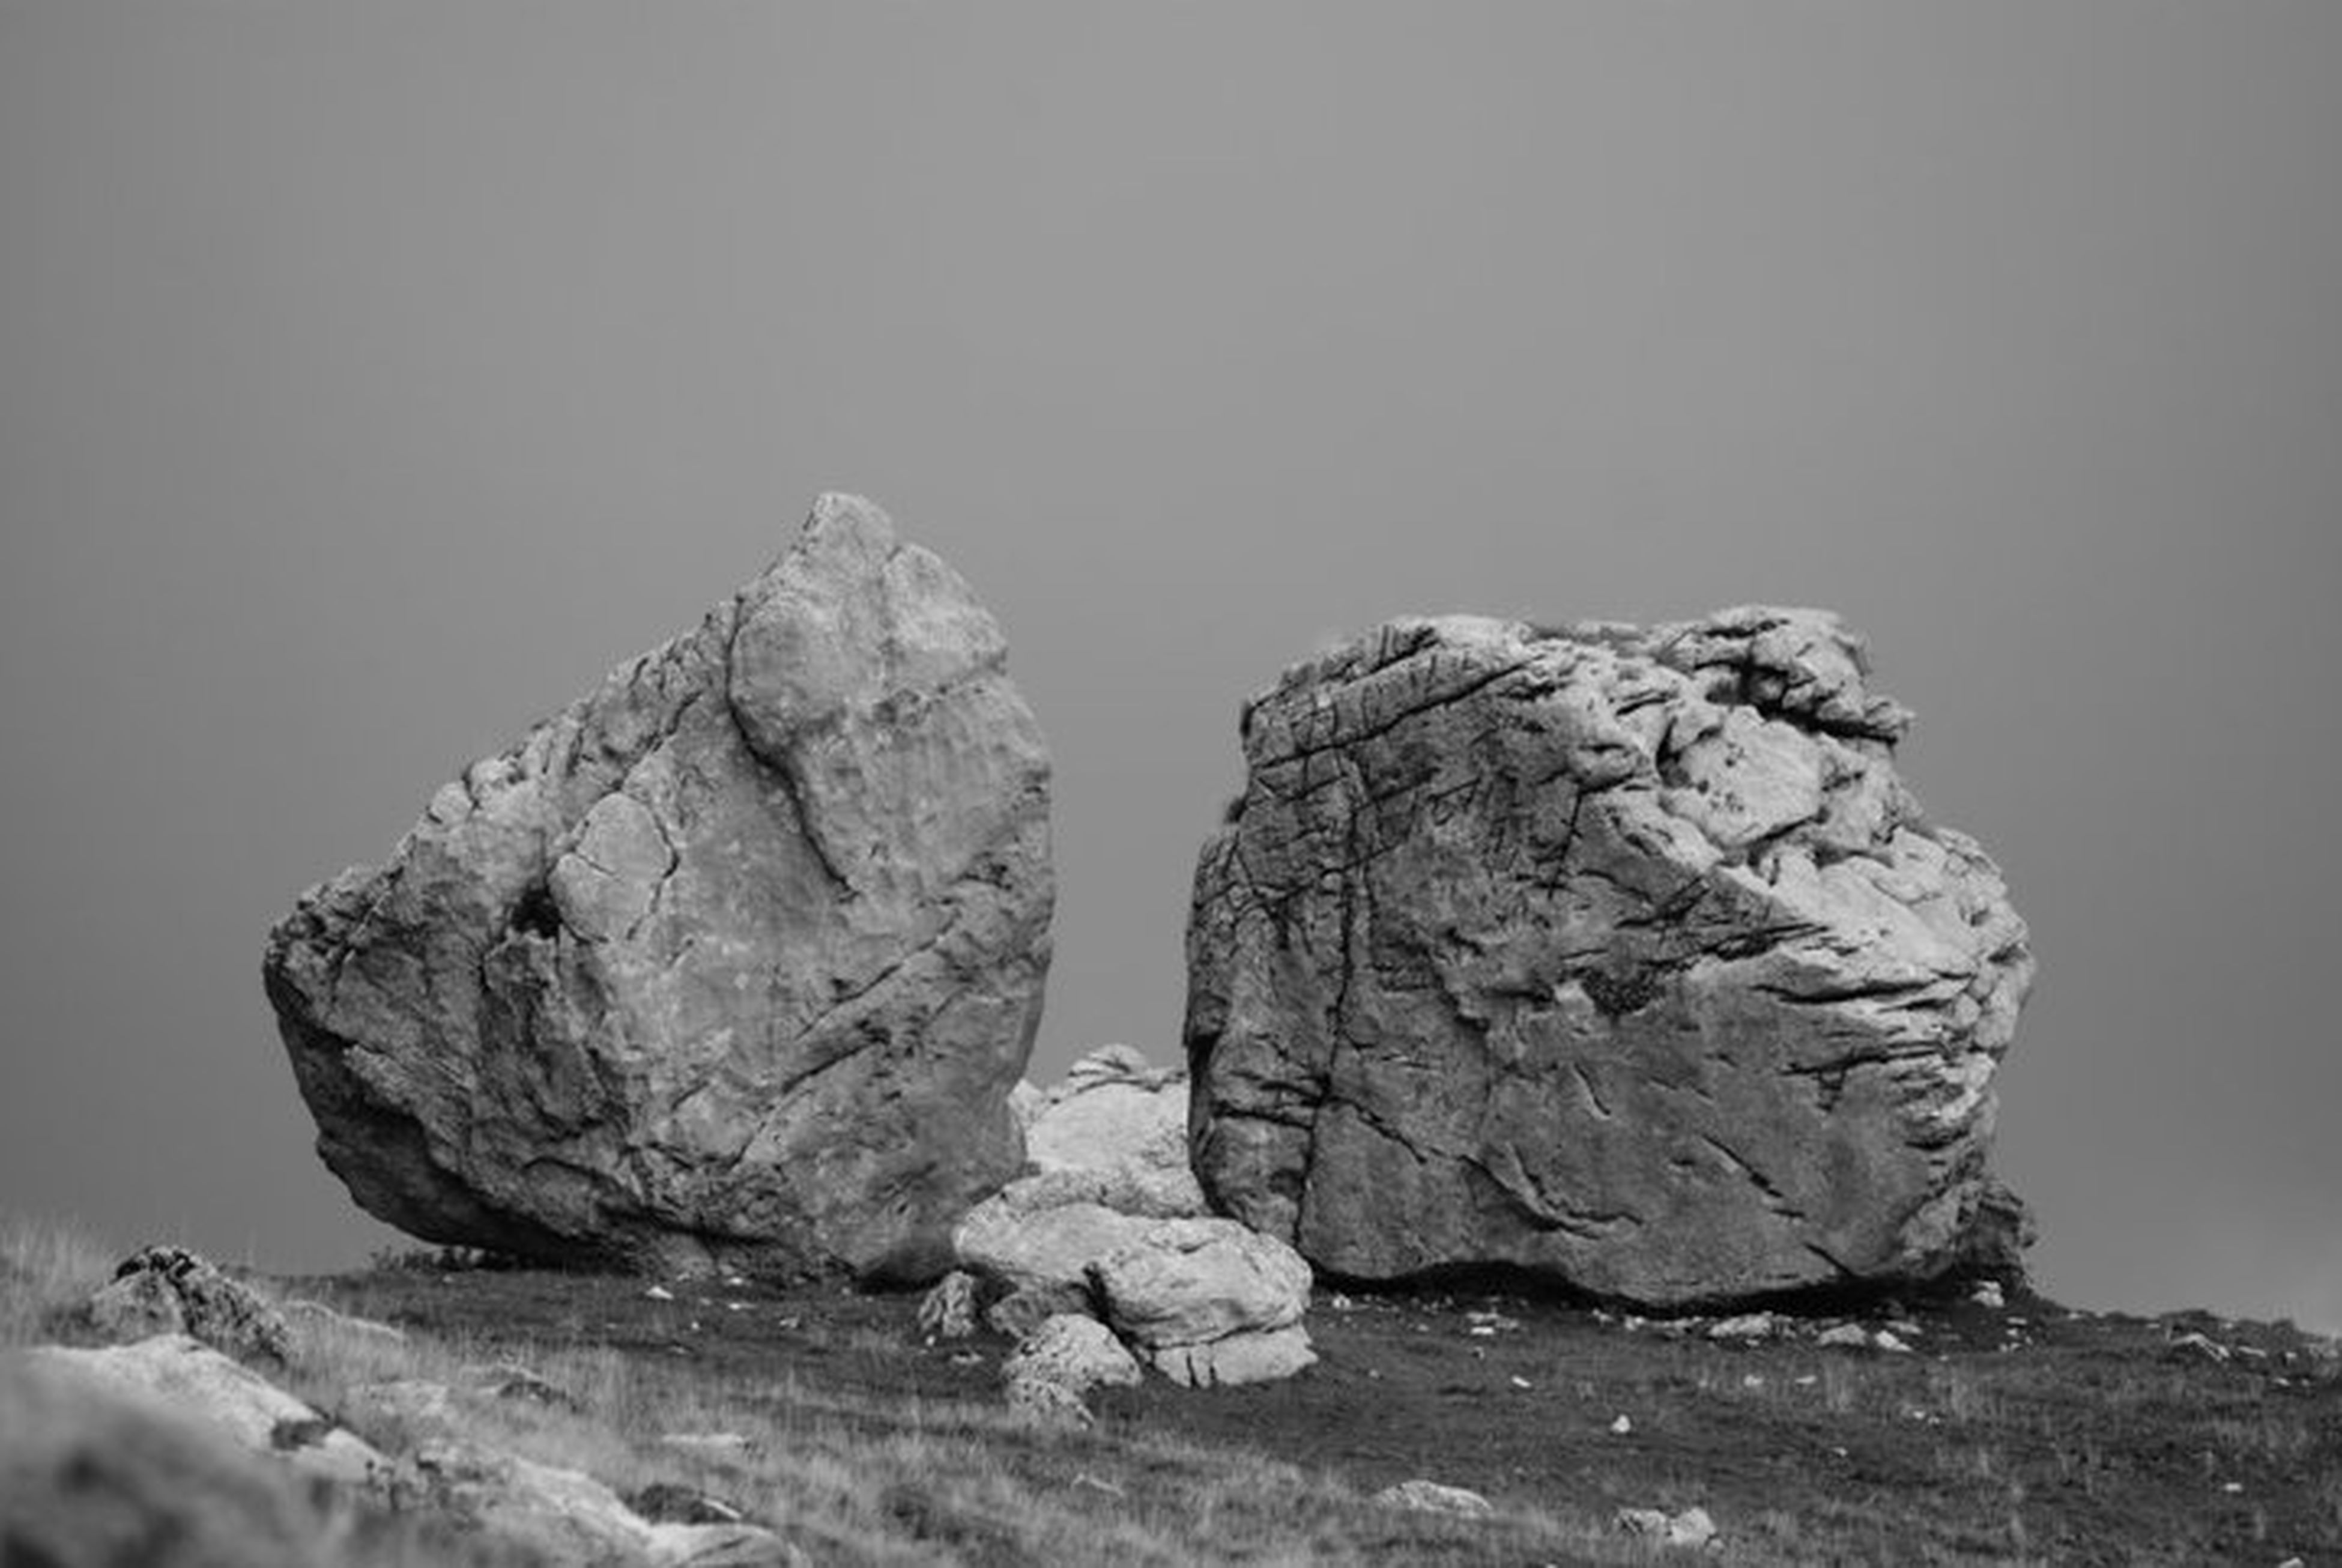 rock - object, rock formation, textured, rough, rock, tranquility, nature, clear sky, copy space, close-up, natural pattern, geology, tranquil scene, no people, beauty in nature, eroded, outdoors, focus on foreground, day, brown